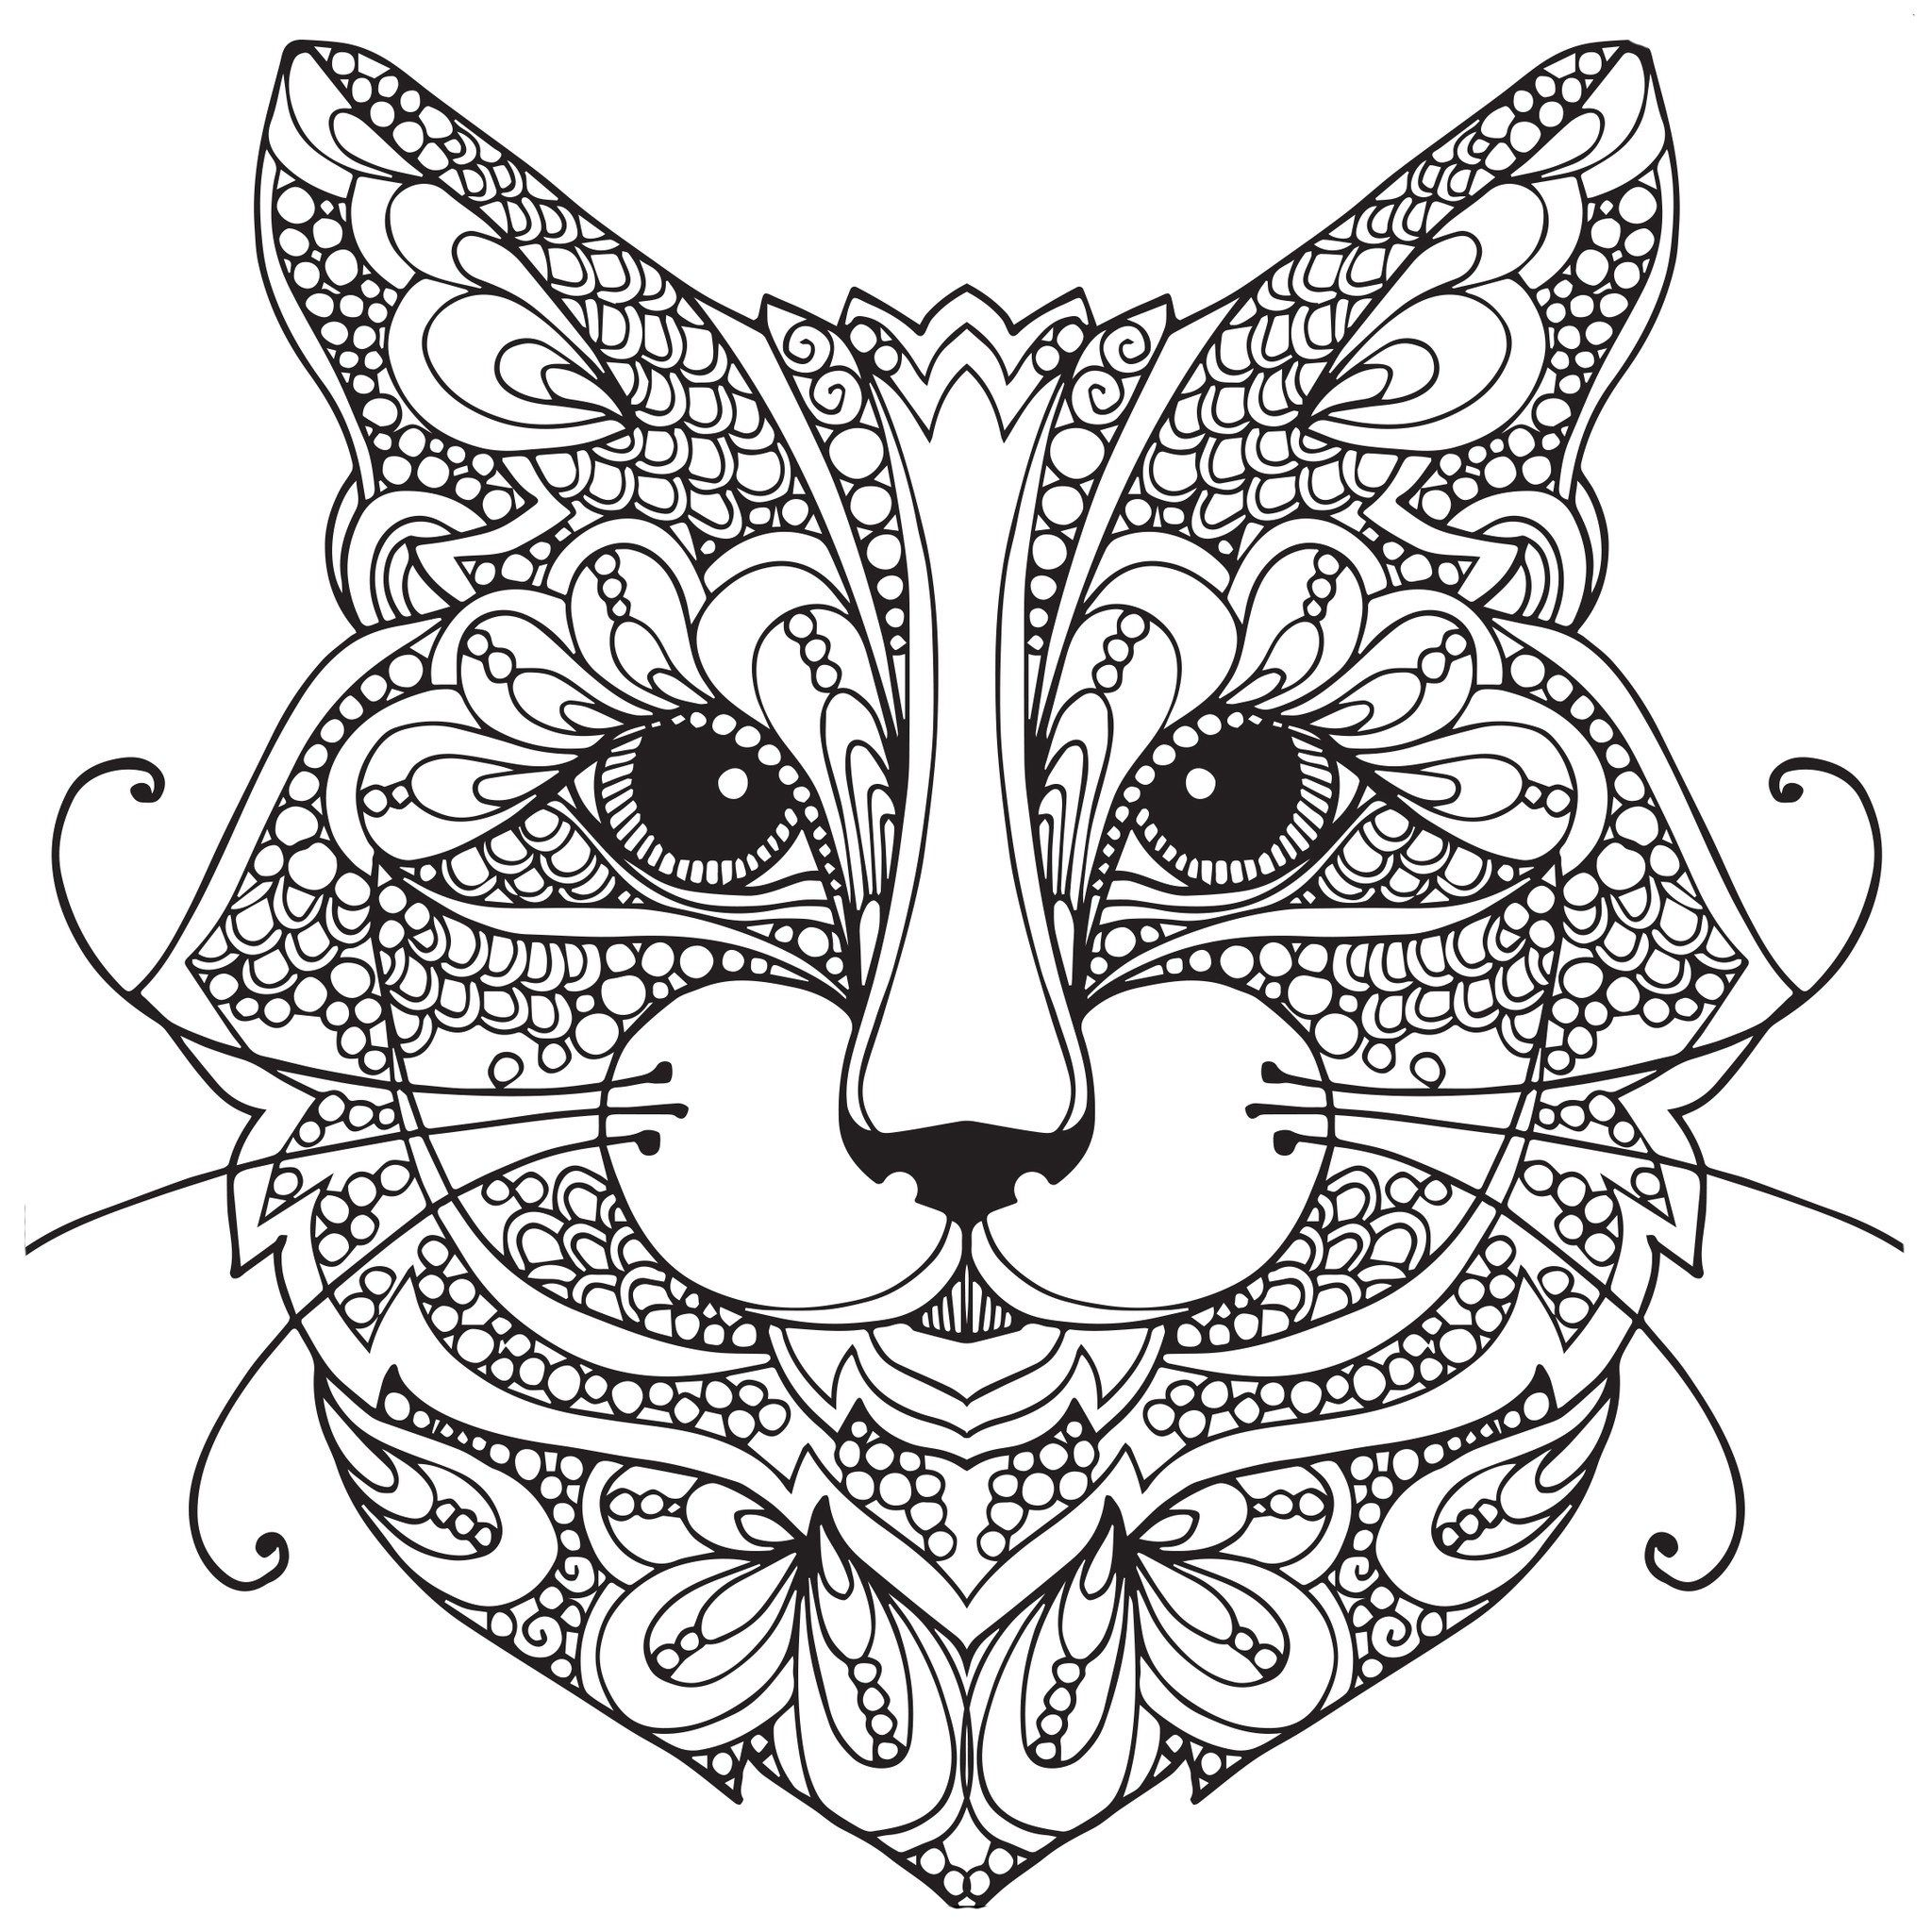 Adult Coloring Pages: Cat-1 | mándalas | Cat coloring page ...